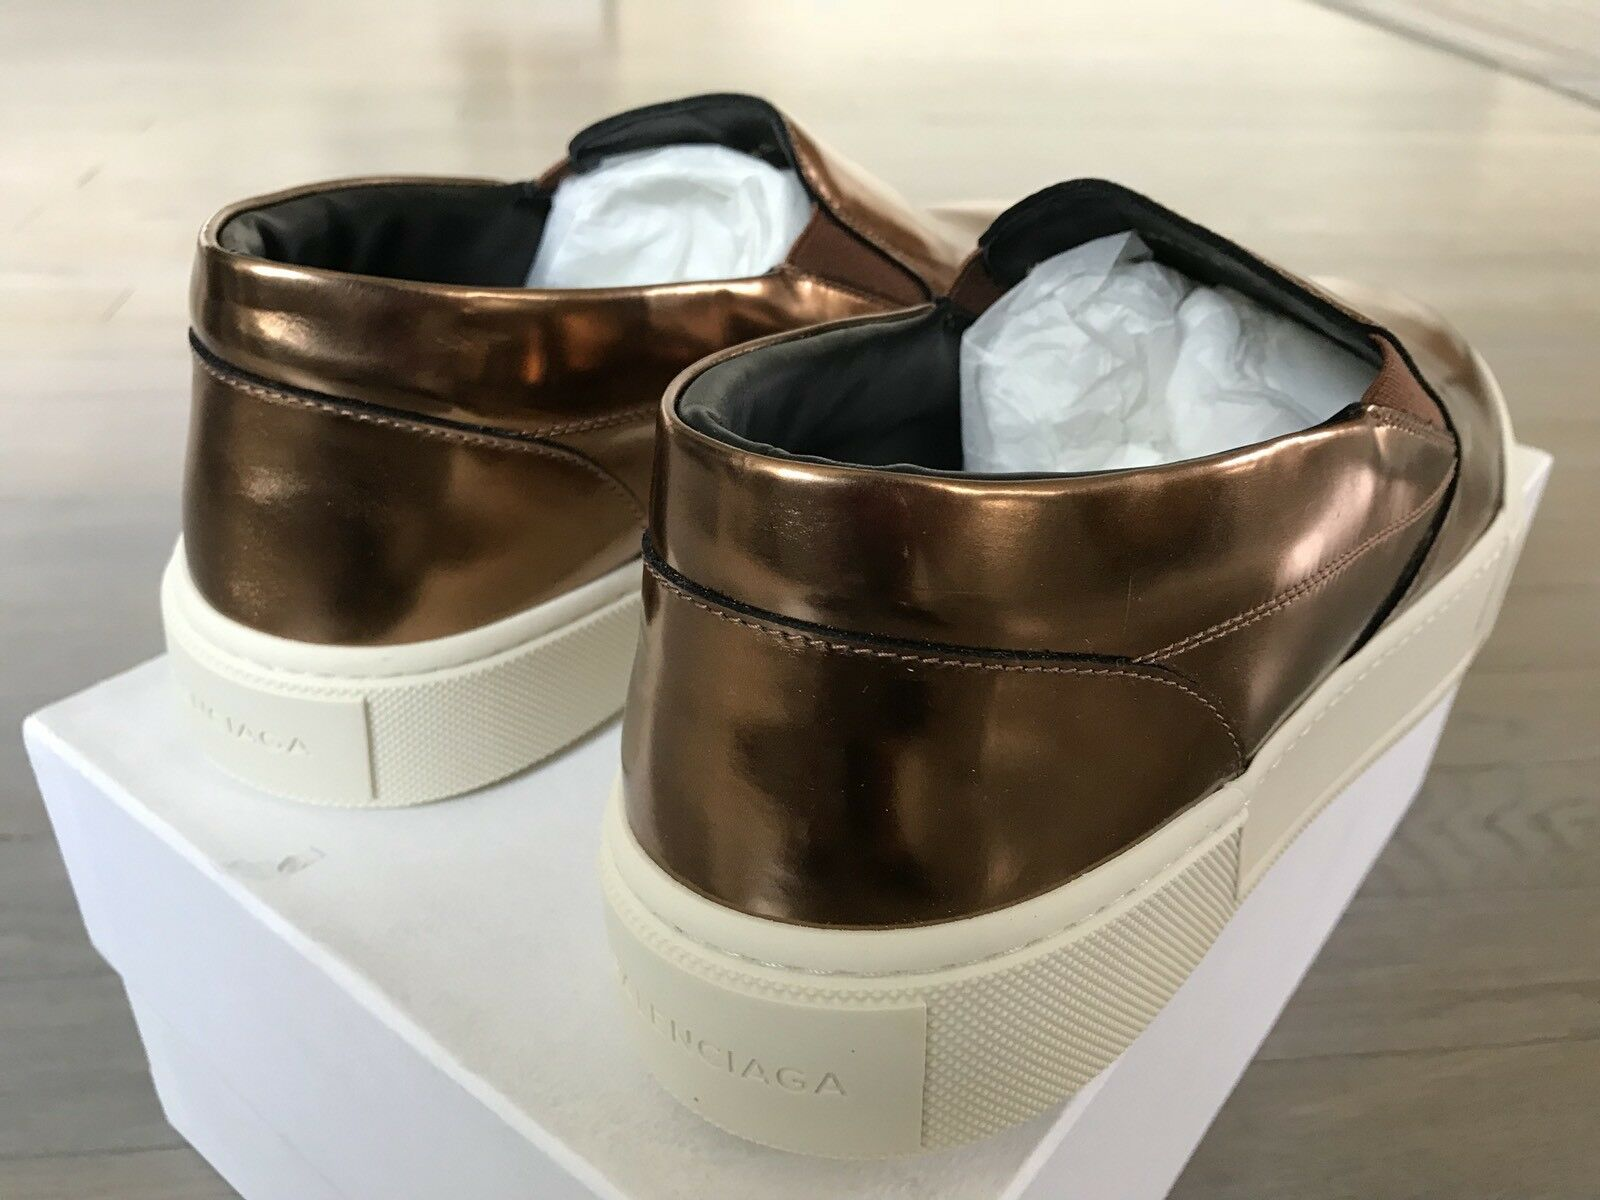 615  Balenciaga Balenciaga Balenciaga Copper Leather Slip Ons Size US 11, EU 44, Made in  975310